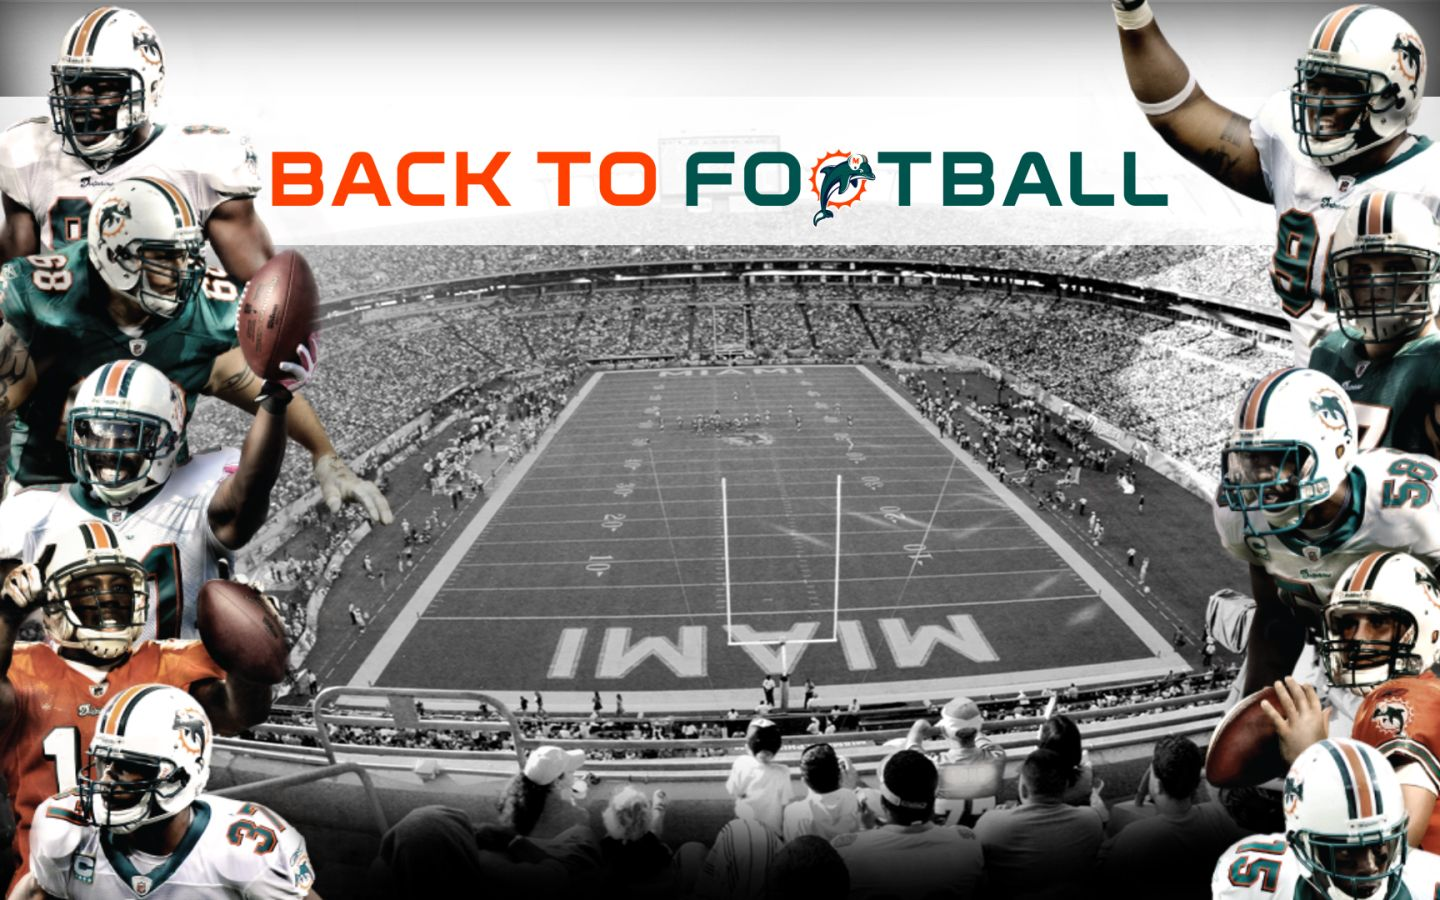 University Of Miami Football Wallpaper Miami Football Miami Hurricanes Football University Of Miami Hurricanes